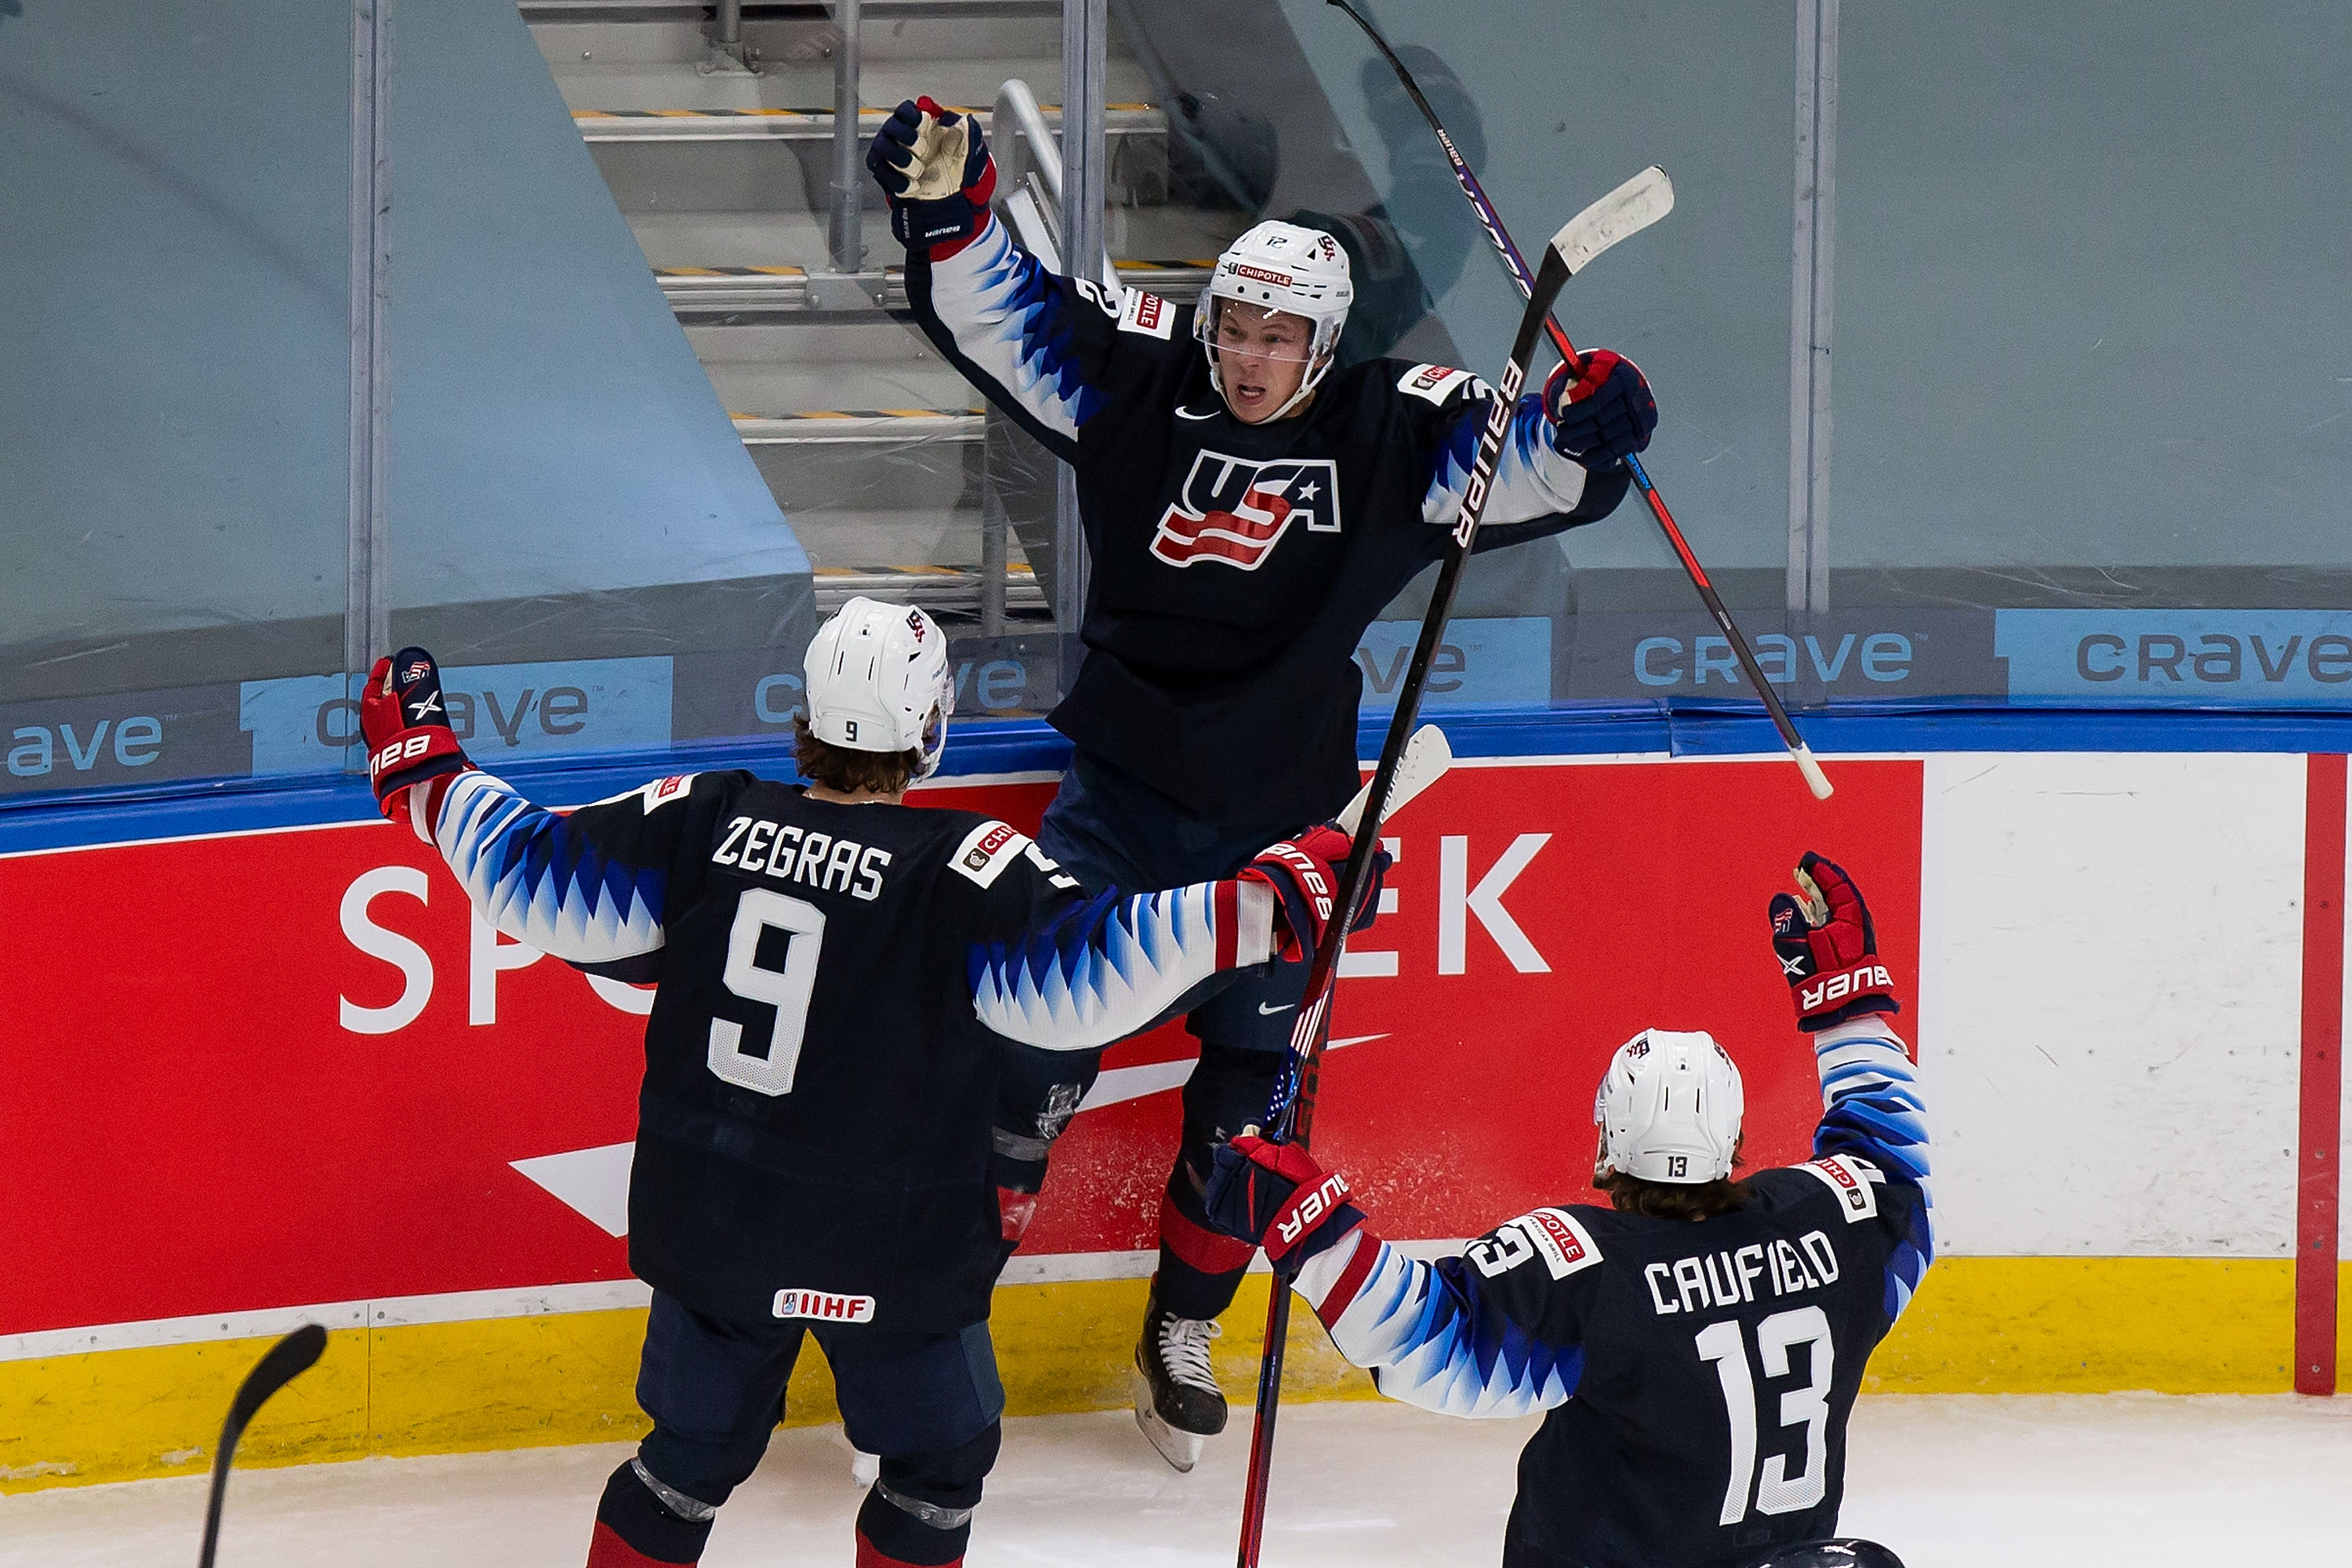 Trevor Zegras #9, Matthew Boldy #12 and Cole Caulfield #13 of the United States celebrate a goal against Finland during the 2021 IIHF World Junior Championship semifinals at Rogers Place on January 4, 2021 in Edmonton, Canada.